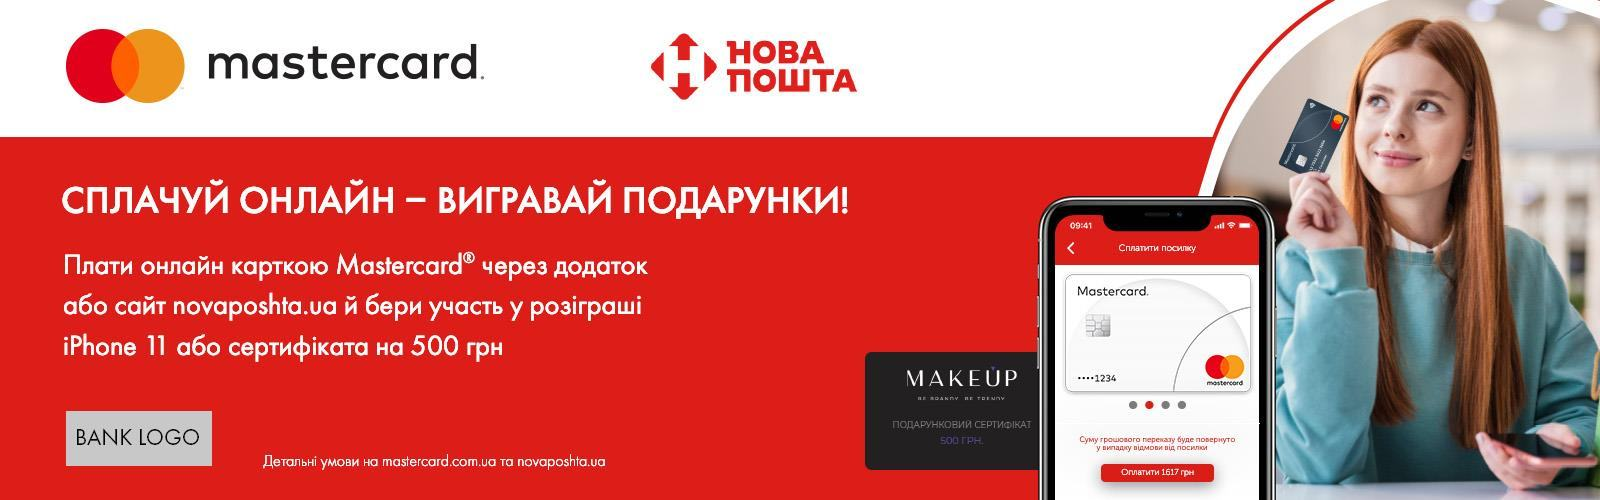 We announce the launch of a new campaign in conjunction with New Mail and Mastercard! - photo - mtb.ua